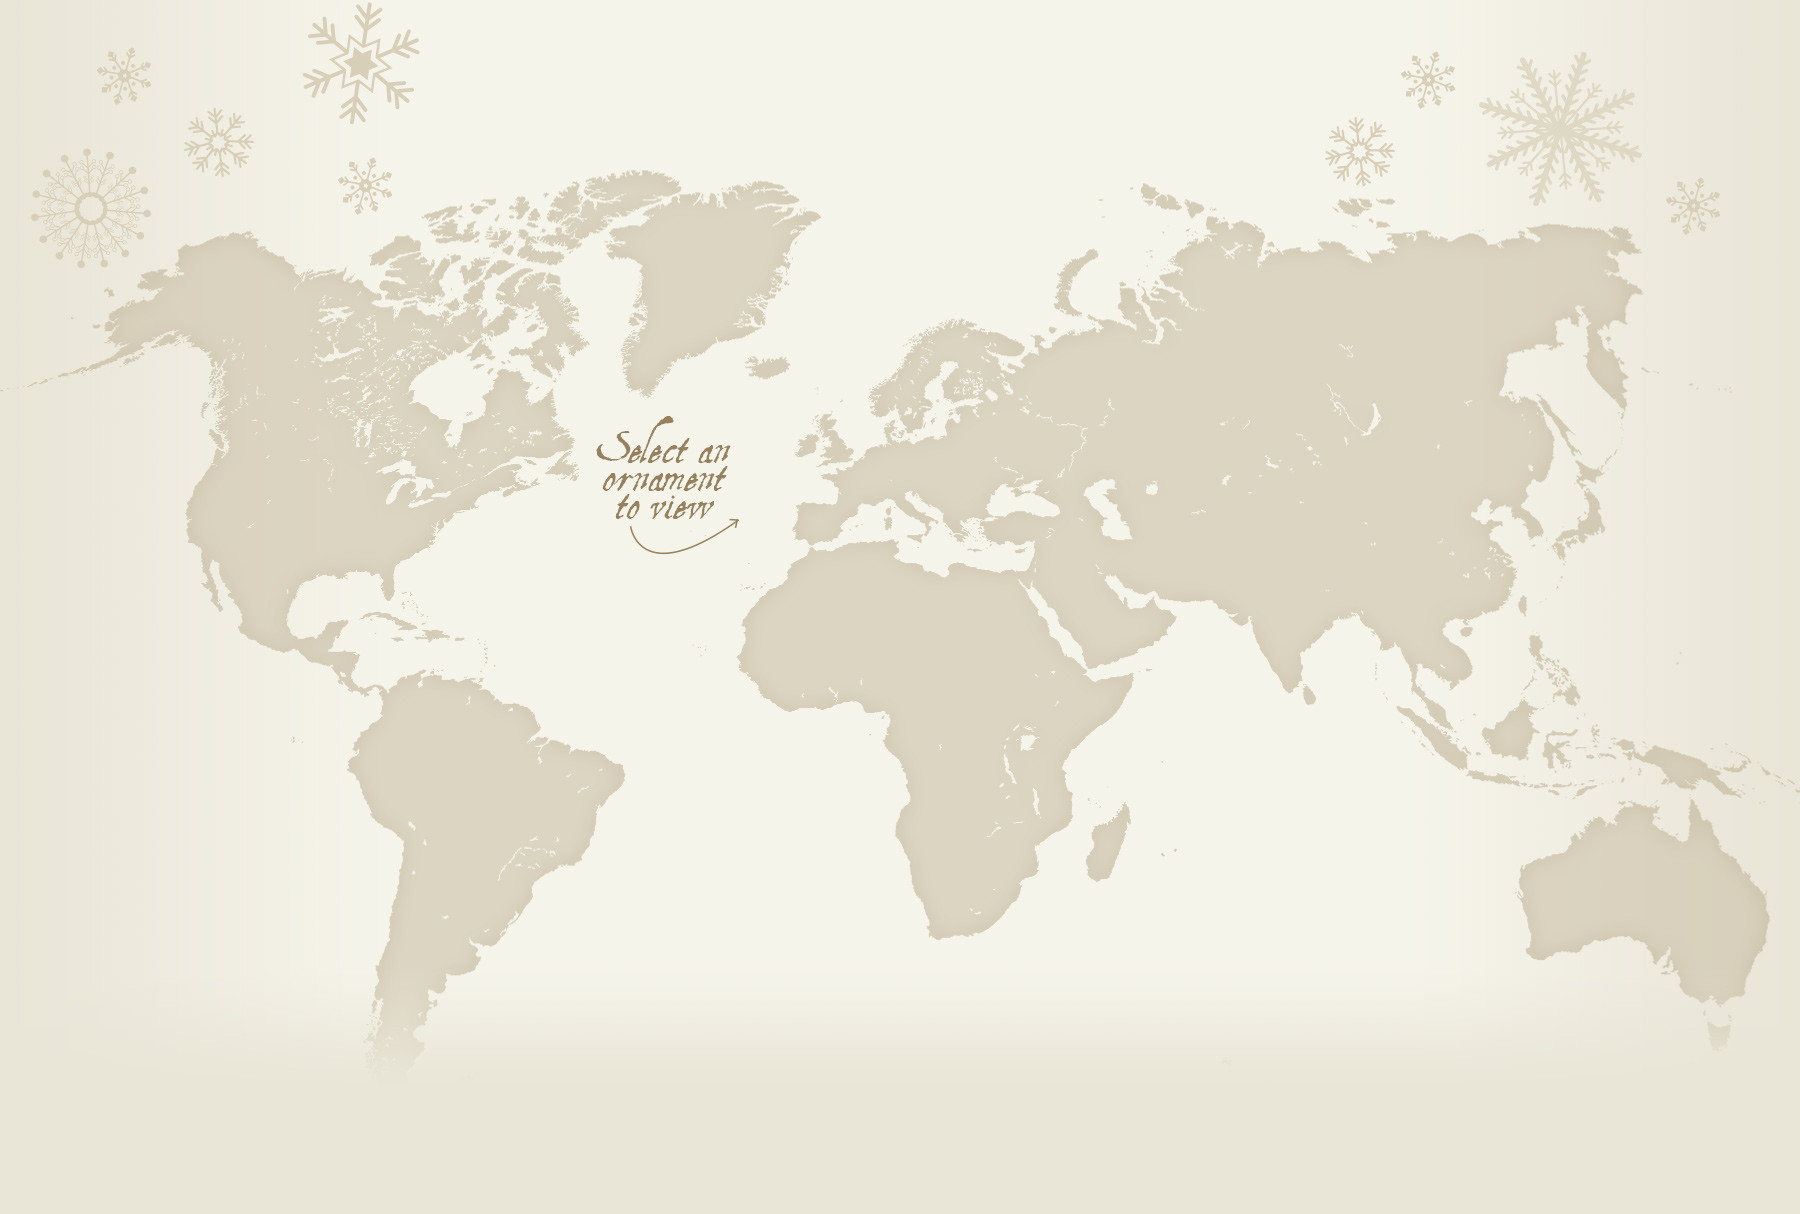 Christmas Decorations Around The World - Map Background